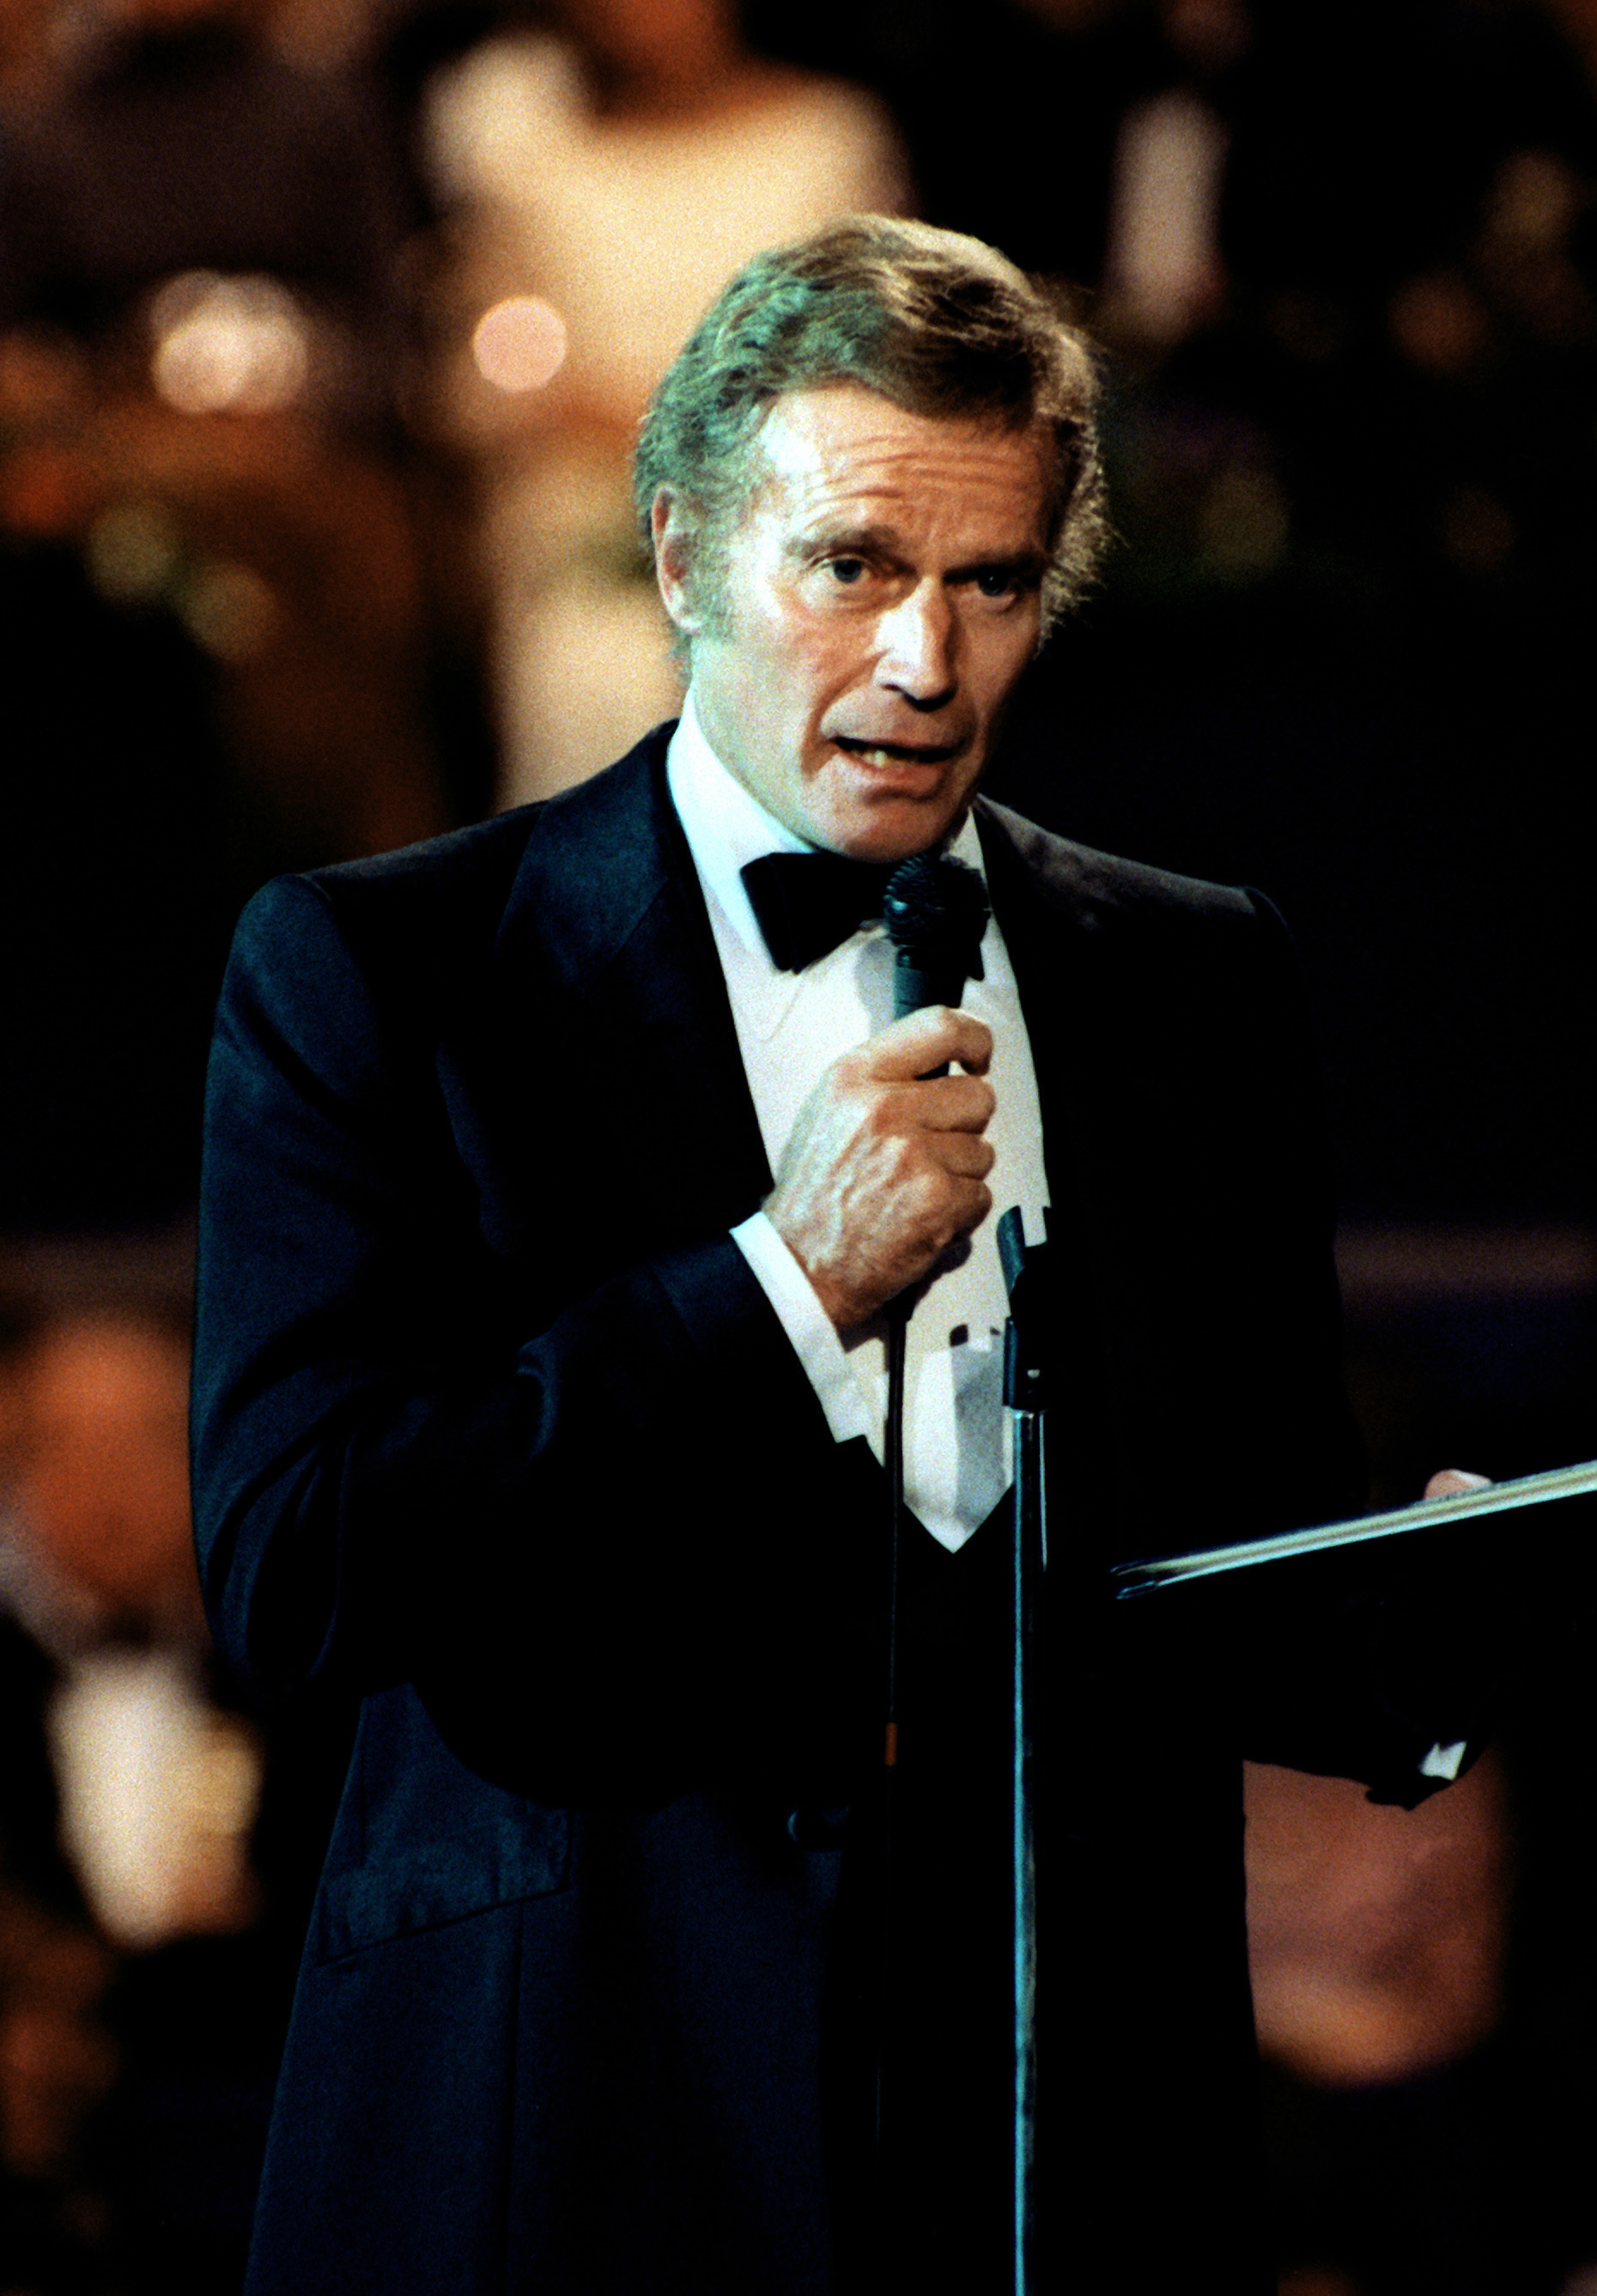 Actor Charlton Heston, president, American Film Institute, addresses the honored guests during the gala celebration at the Capital Center, during Inauguration Day